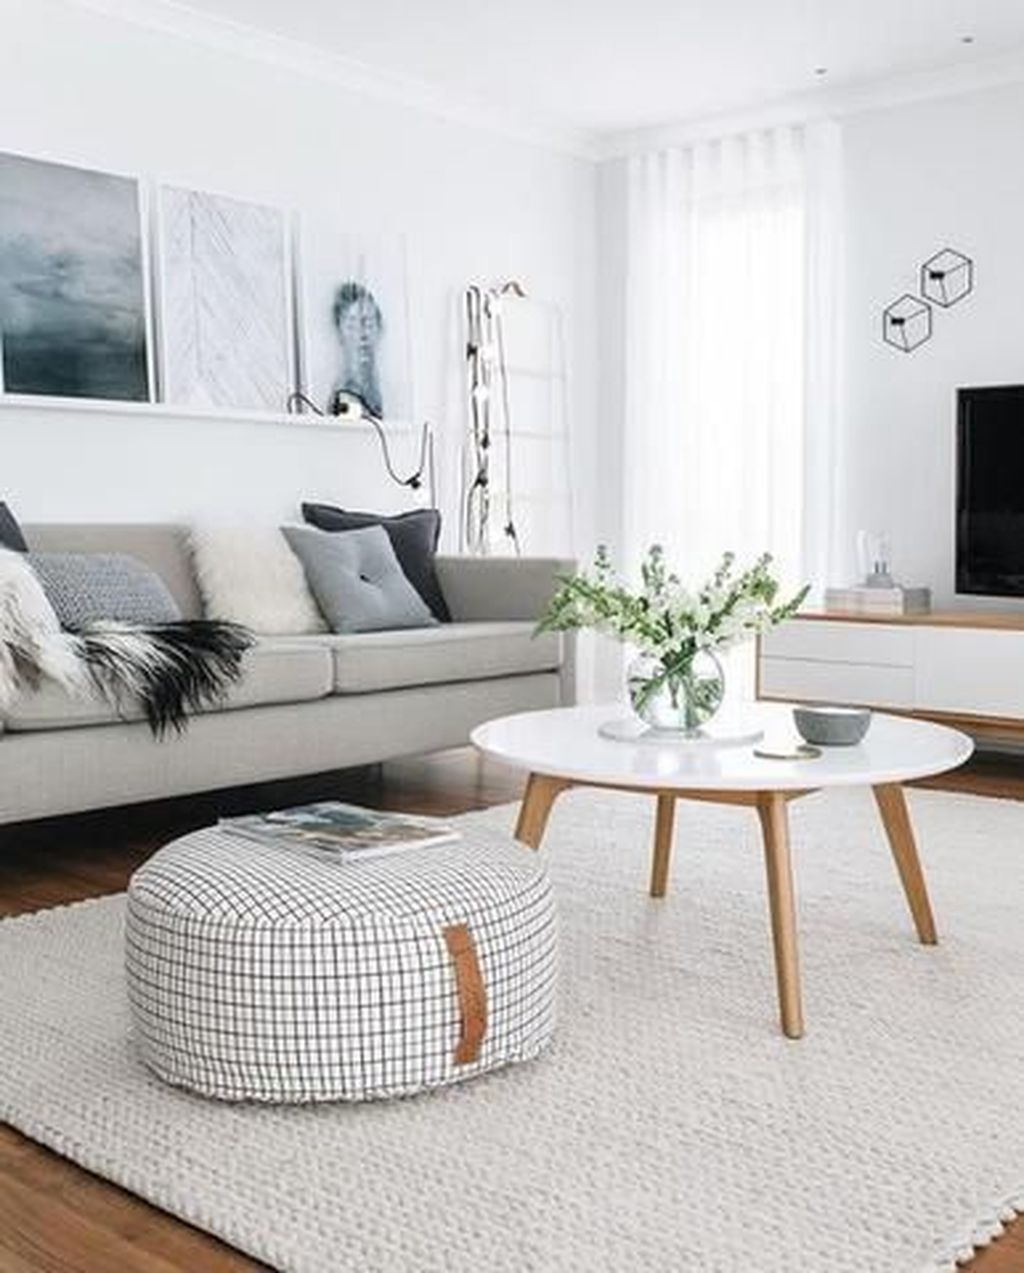 Amazing Scandinavian Living Room Decor Ideas 01